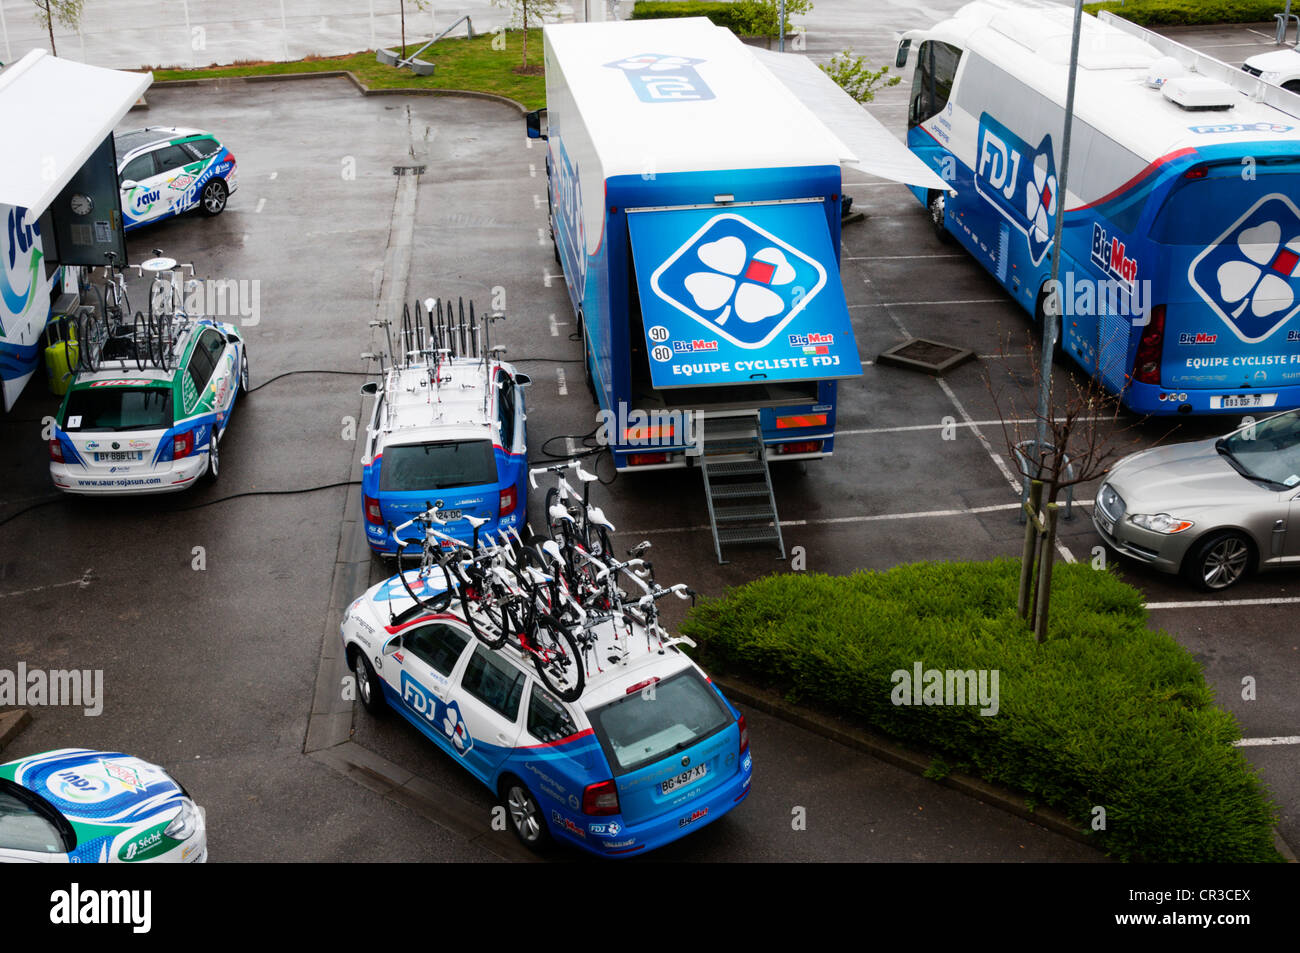 Support vehicles for the 2012 Tour de France in a Calais hotel car park. - Stock Image